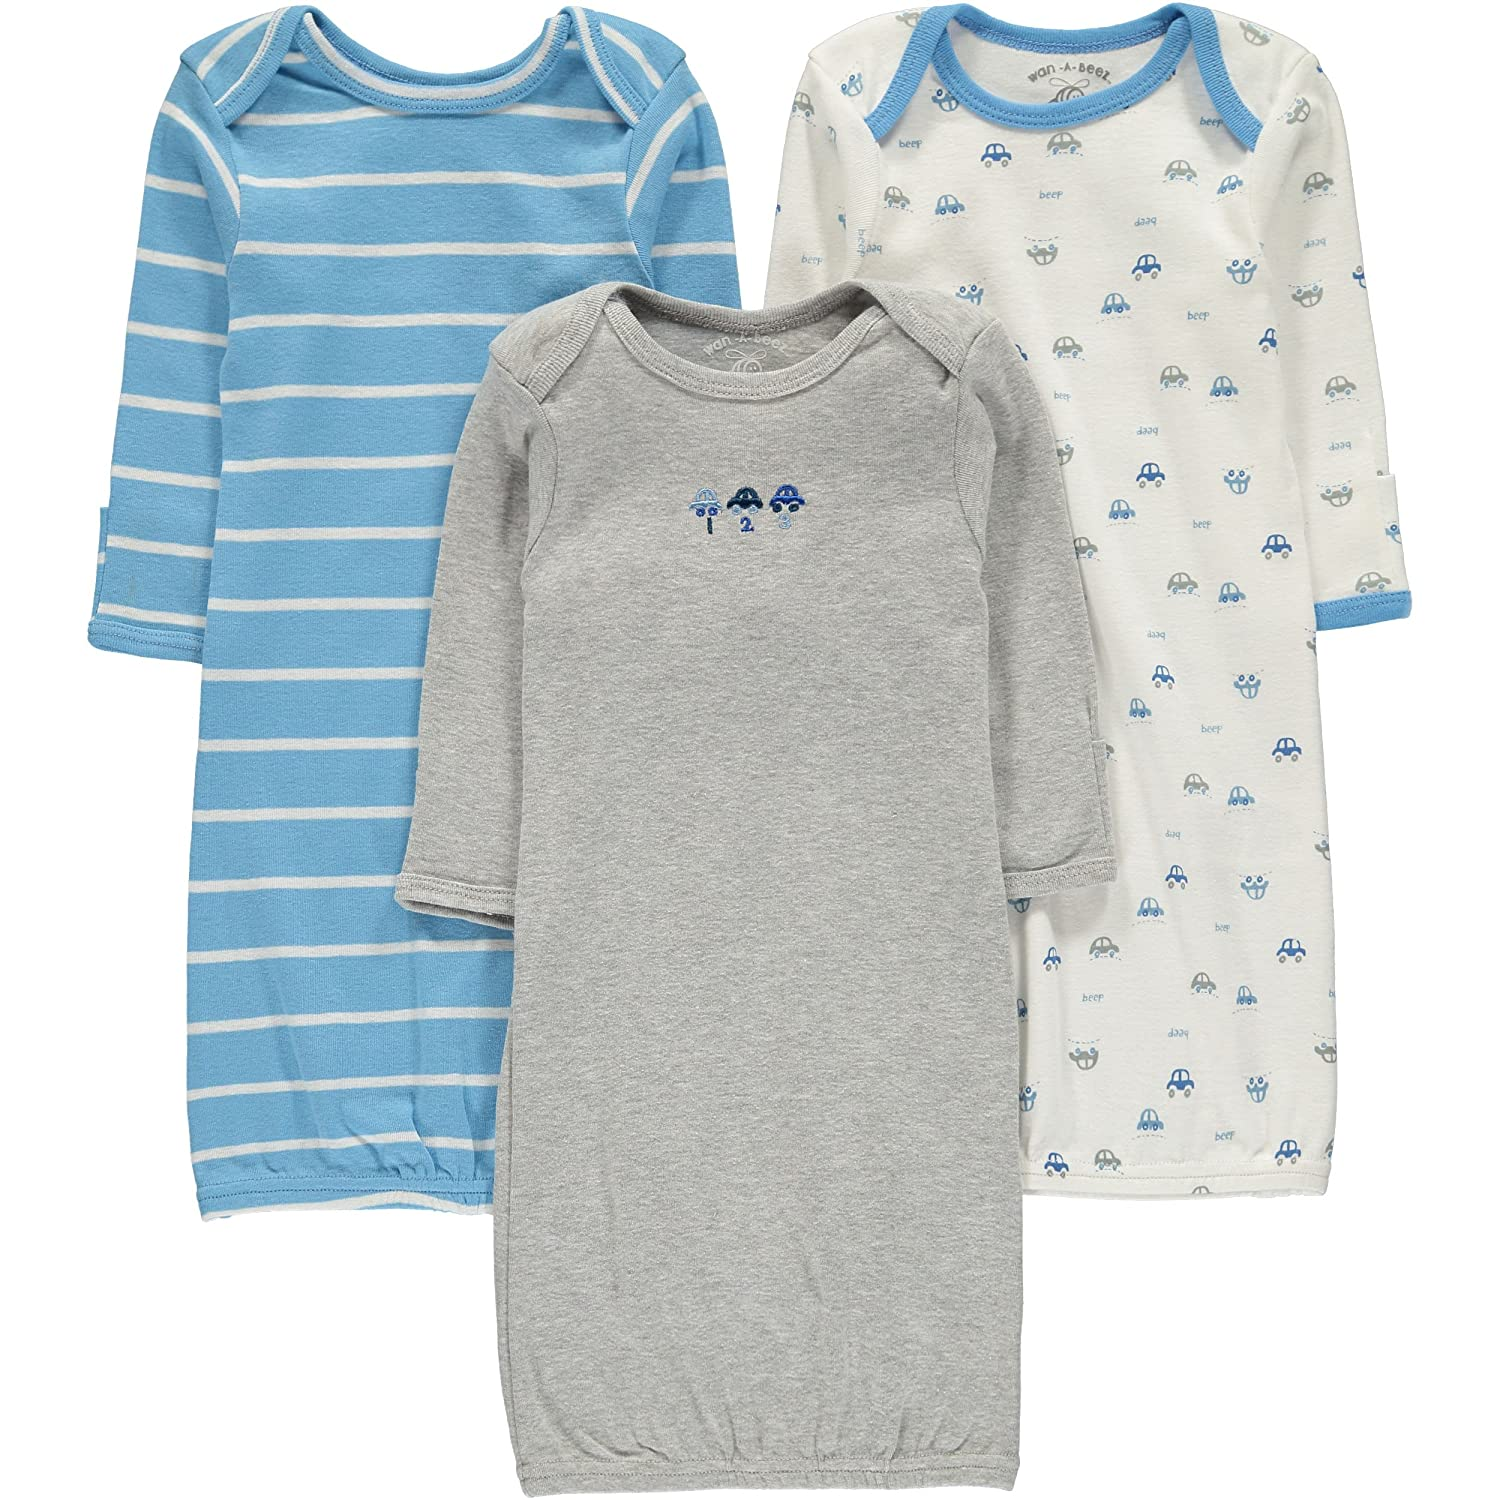 Amazon Wan A Beez Baby 3 Pack Printed Gown Grey Car Assorted